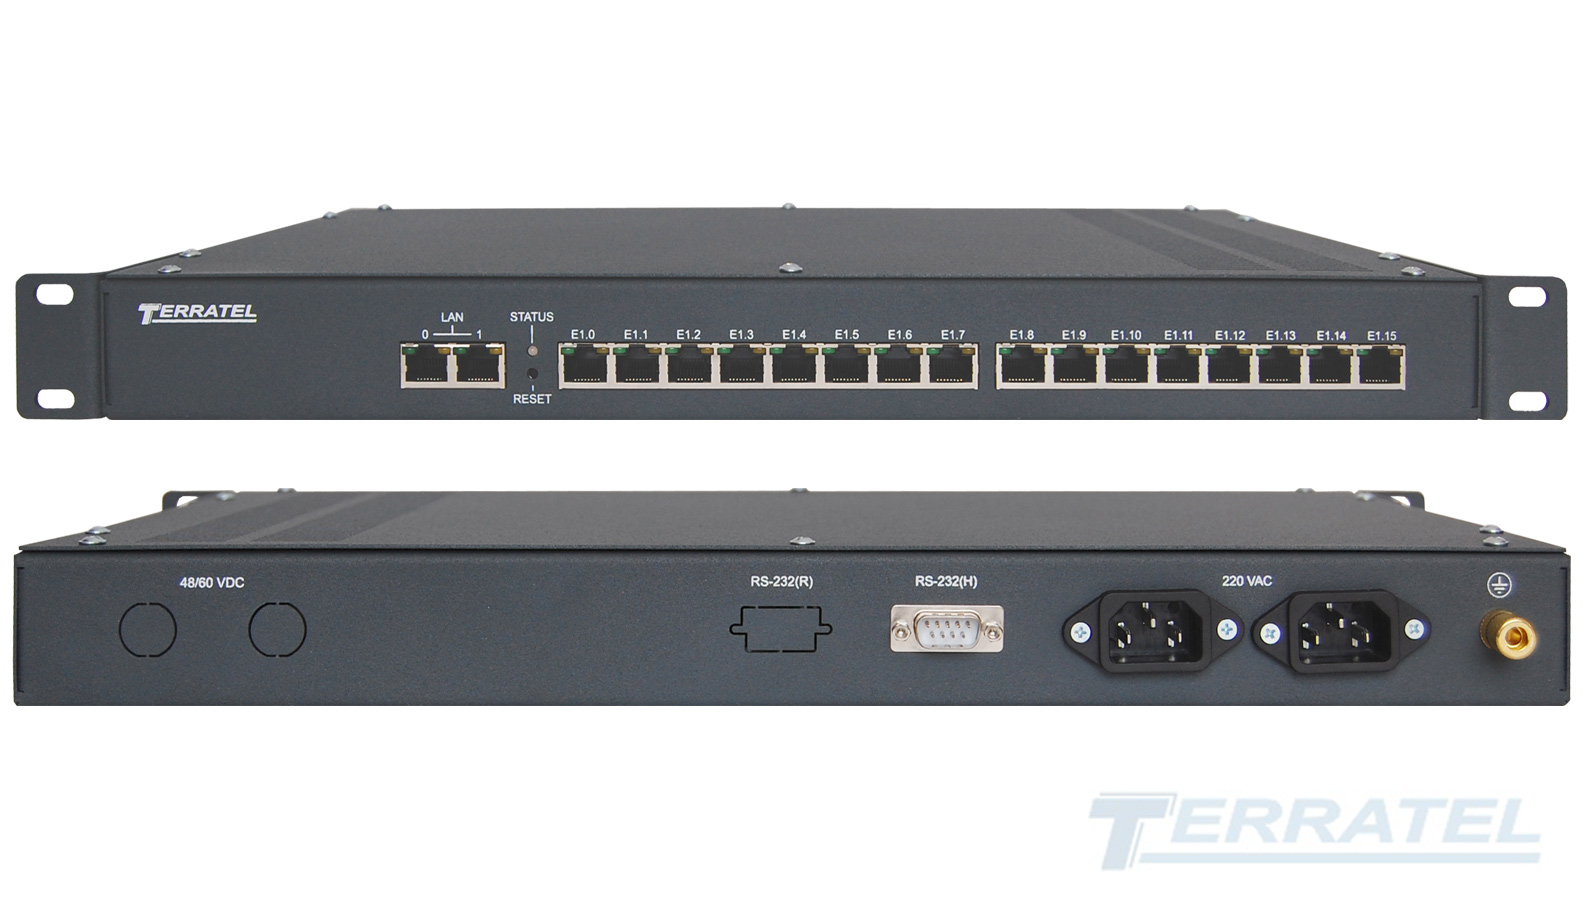 Photo Terratel SS7 VOIP Gateway, integration to SIP, 16E1, SS7, MTP2, MTP3, ISUP, G723, G726, G729, T38